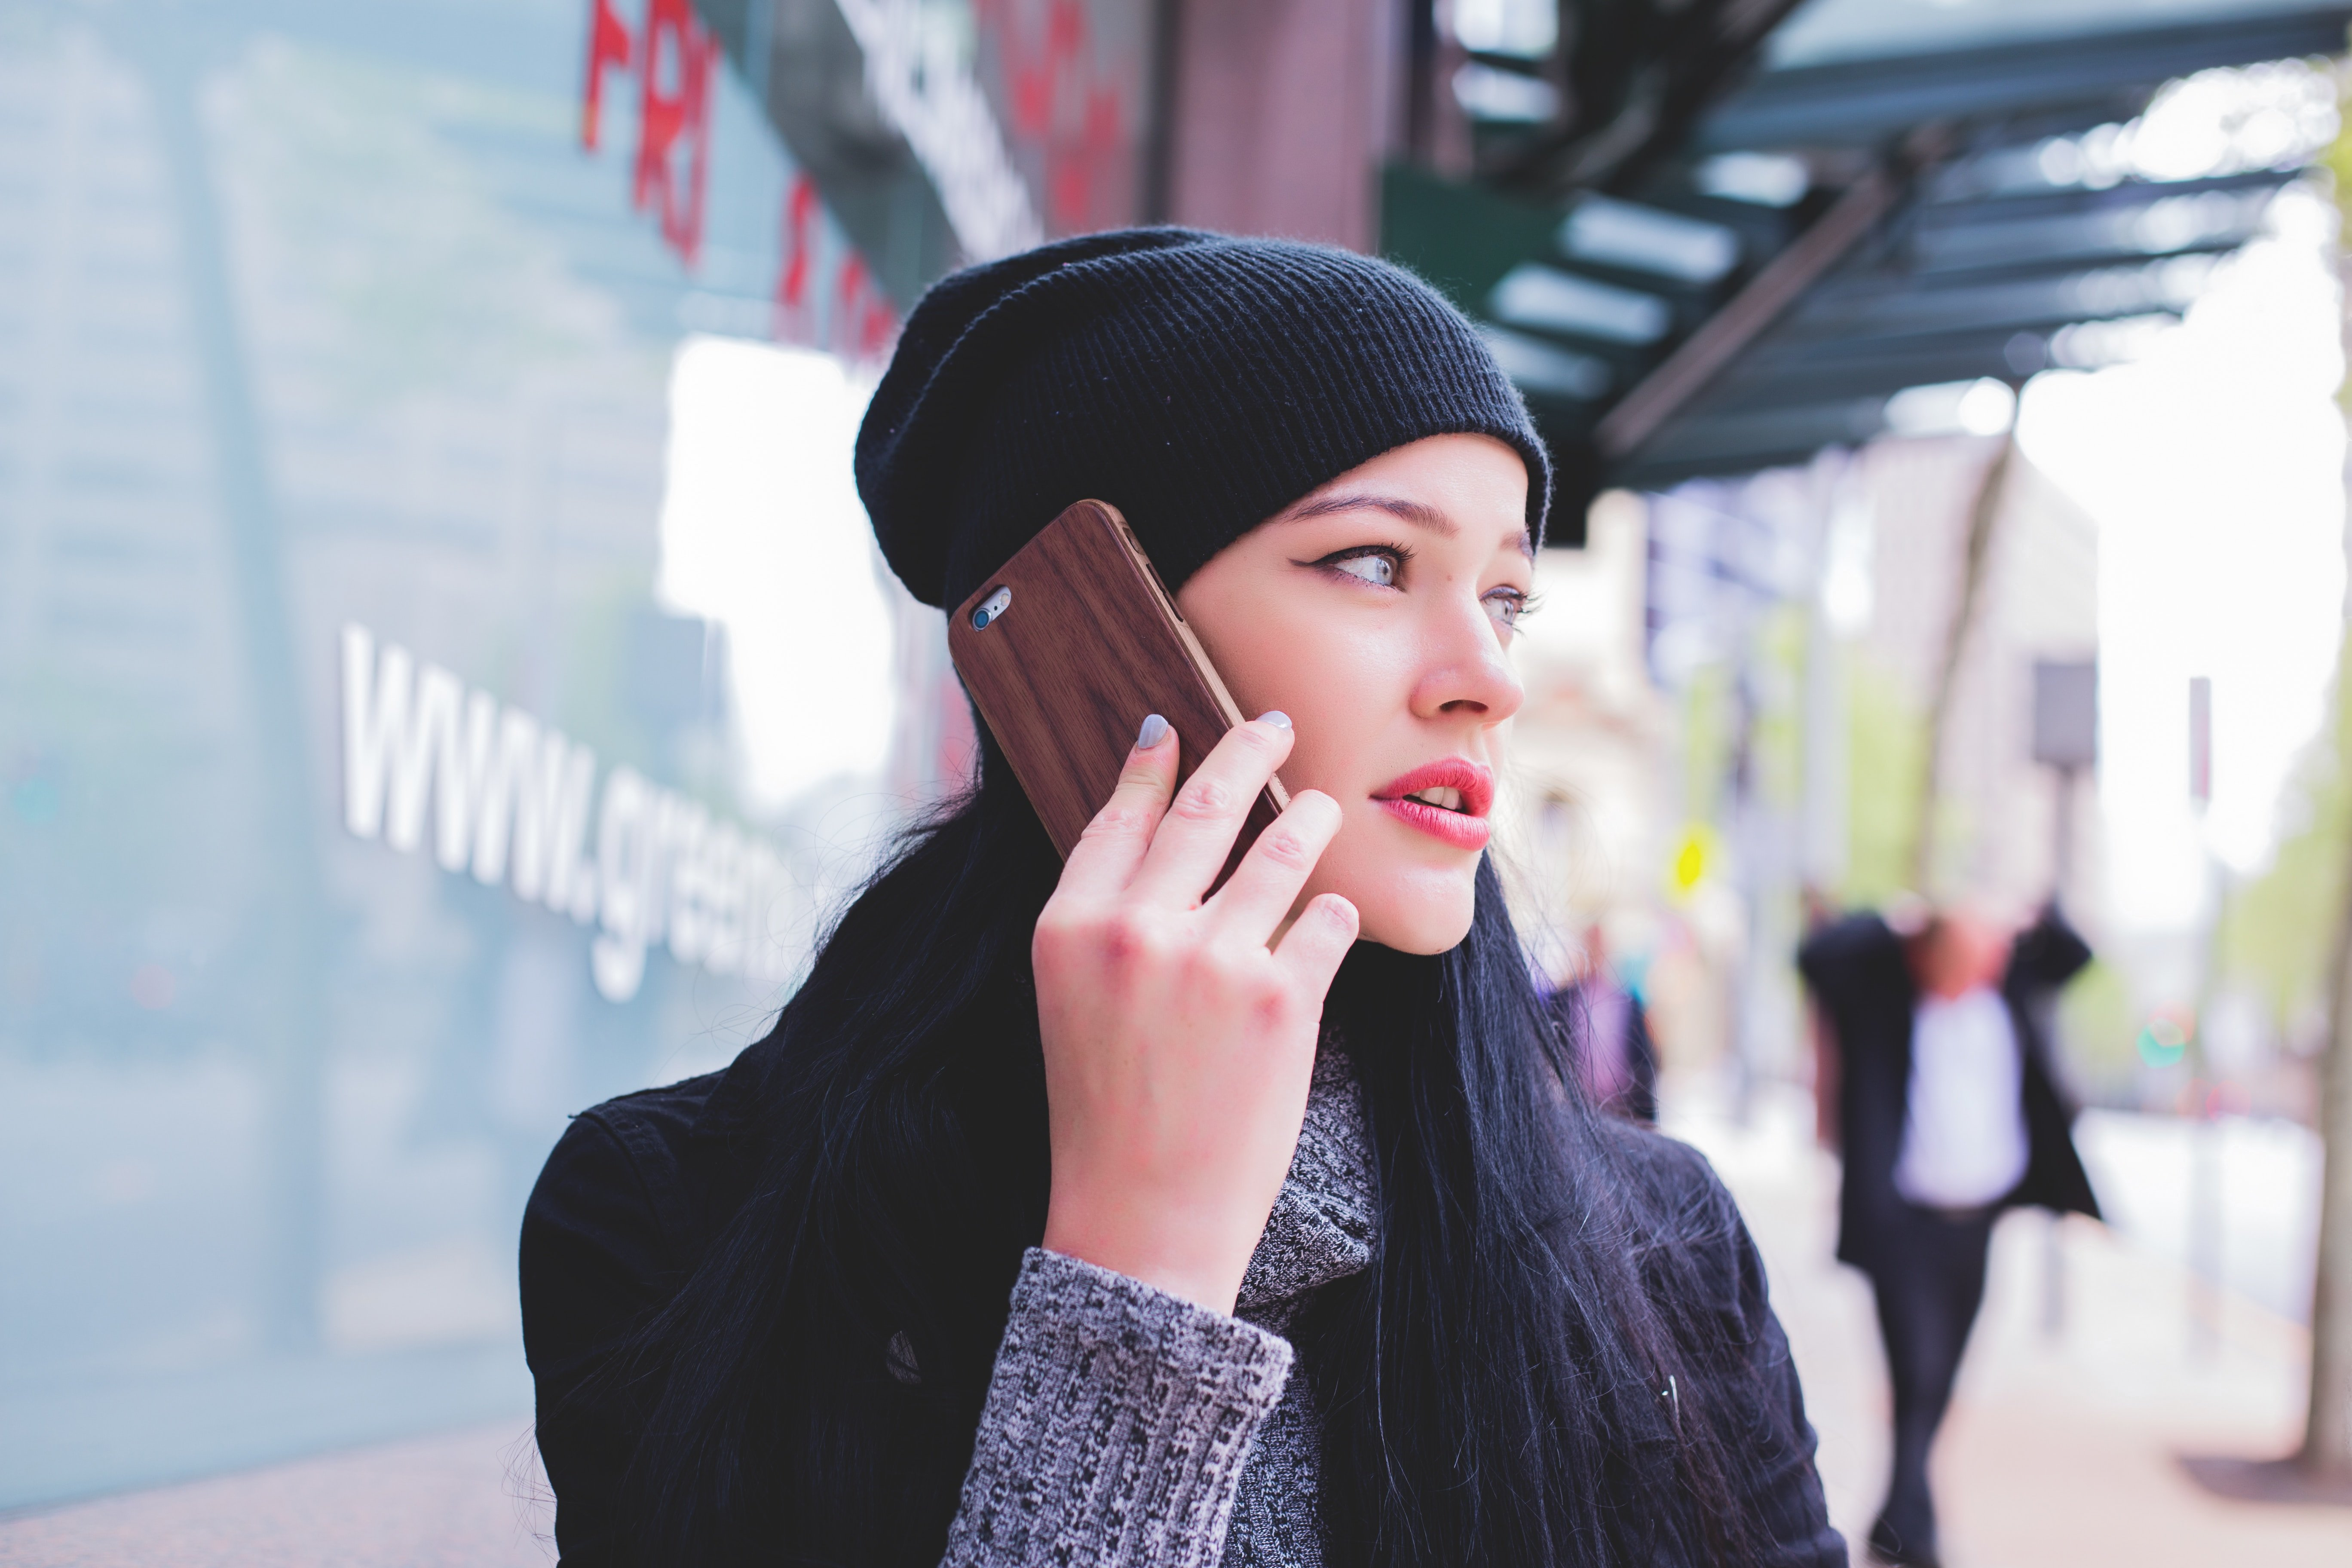 A woman on the phone. | Source: Unsplash